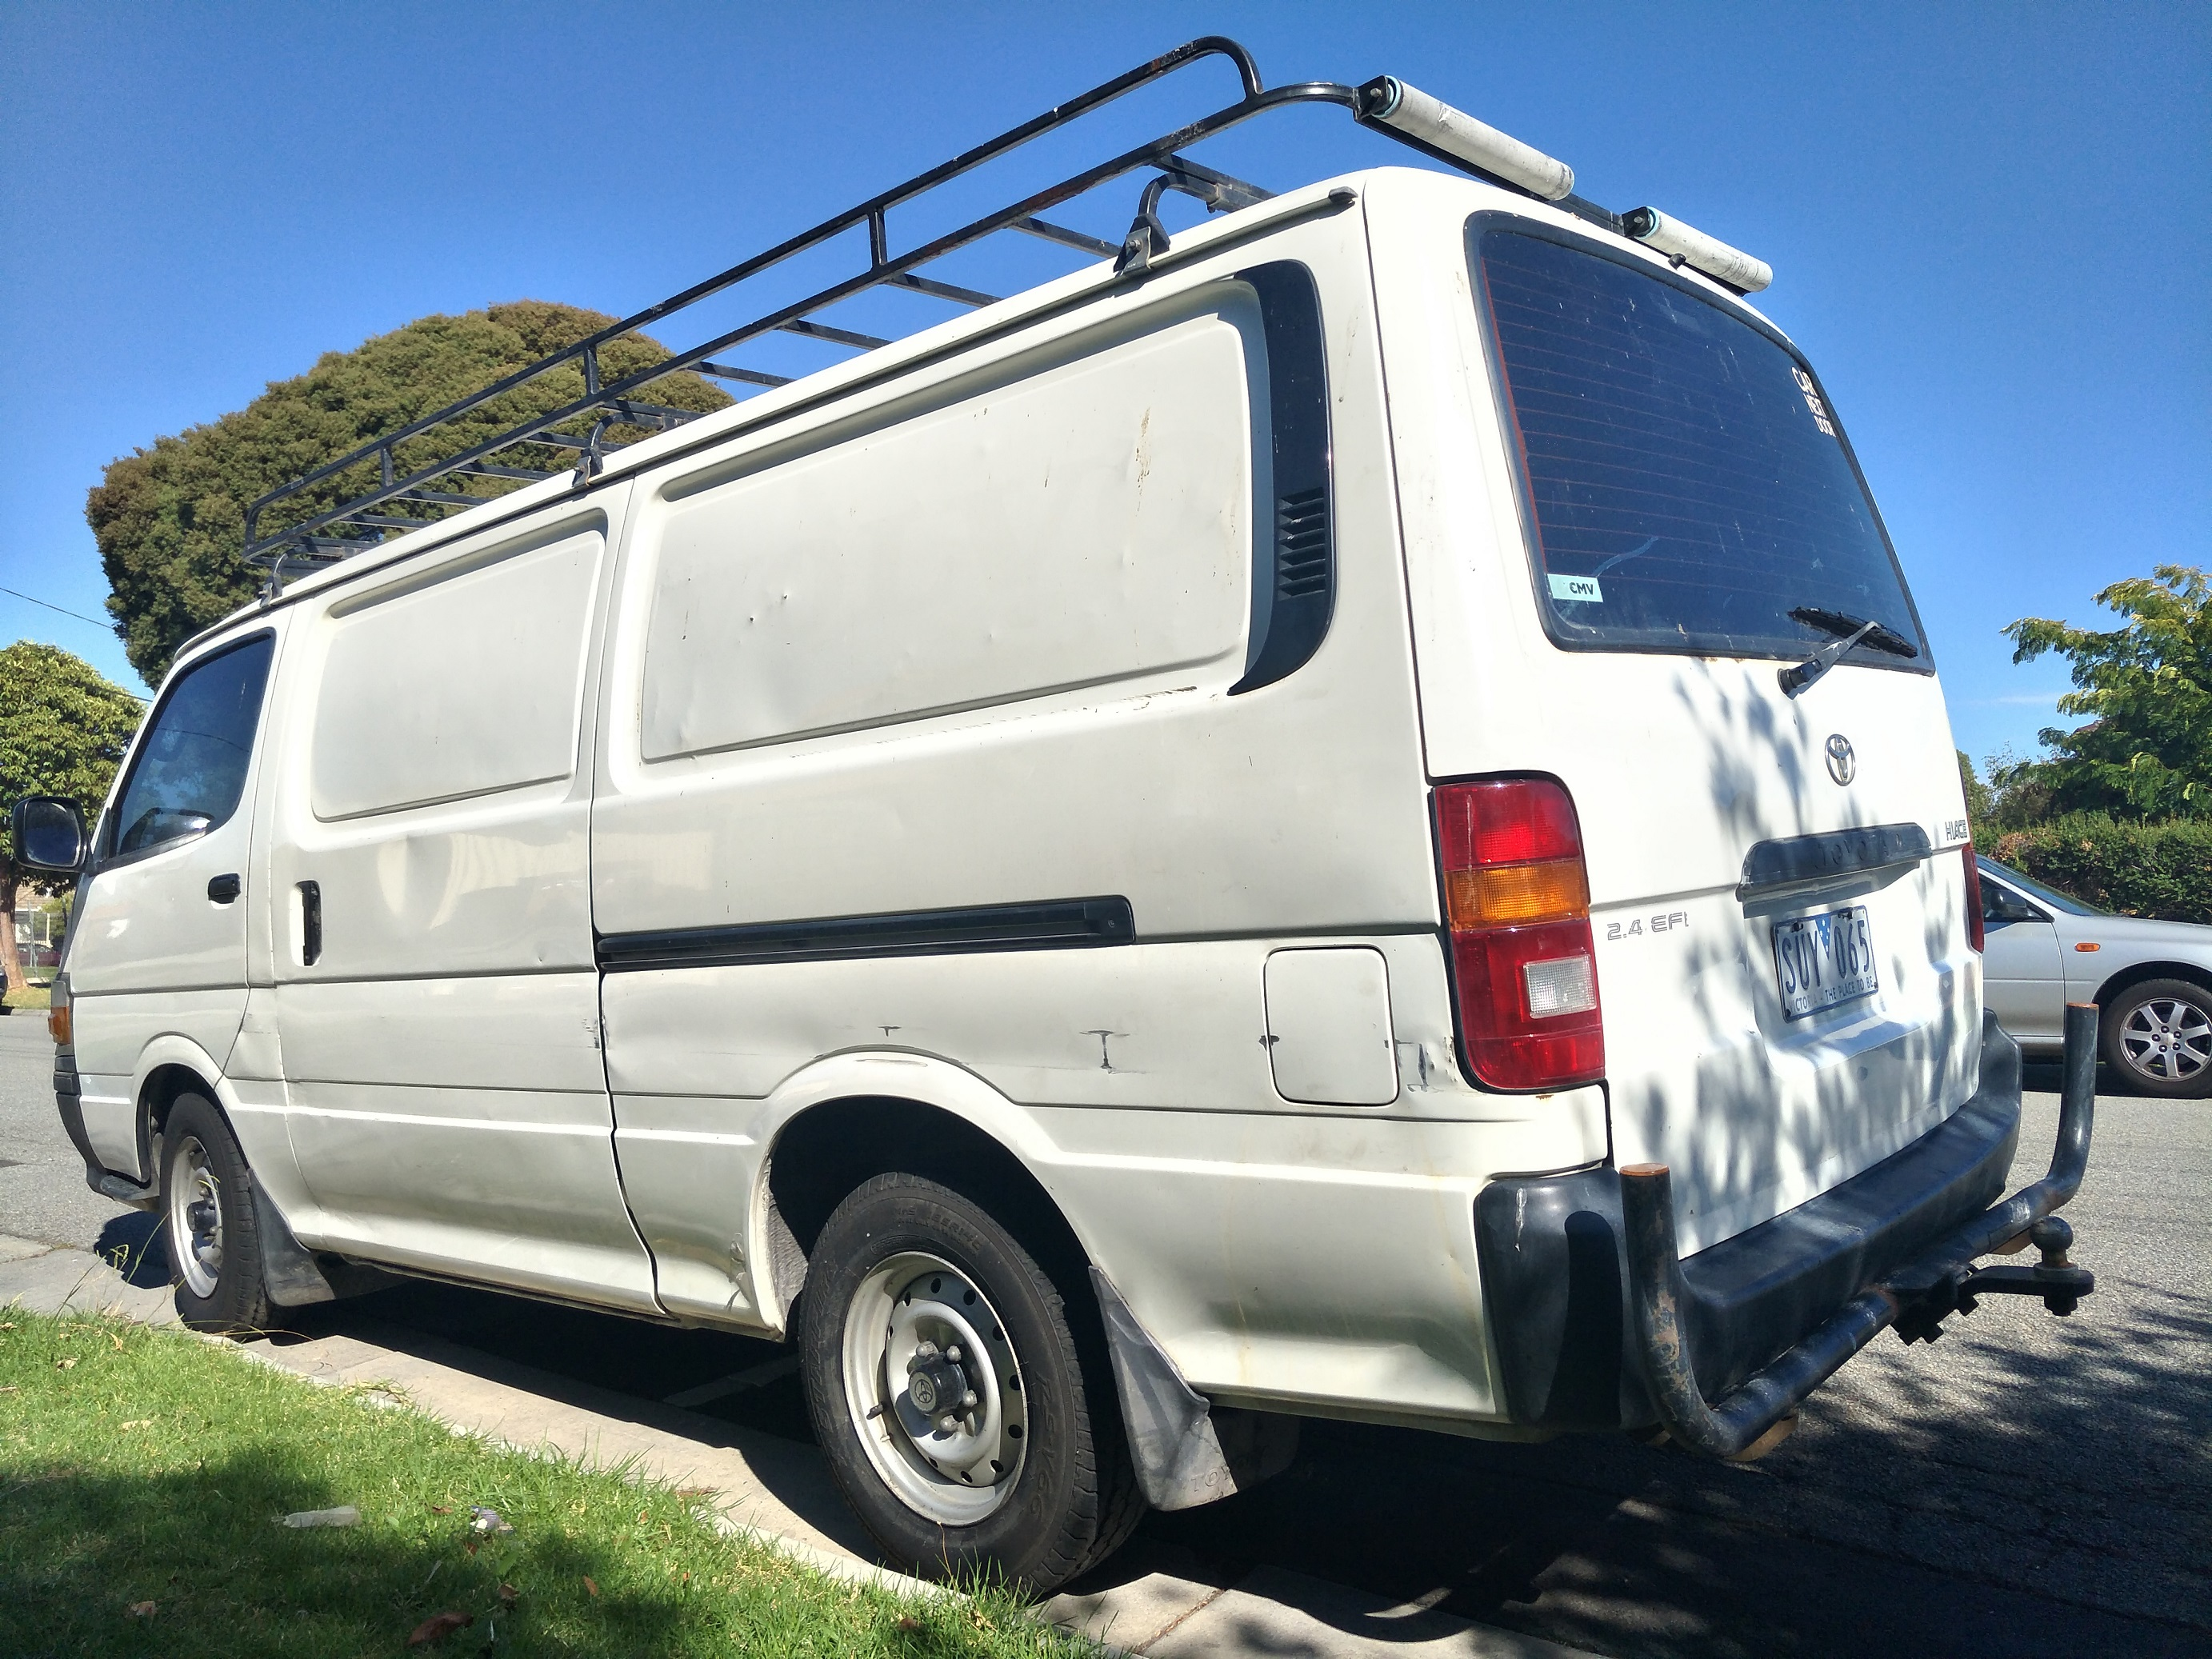 Picture of Matthew's 2004 Toyota Hiace